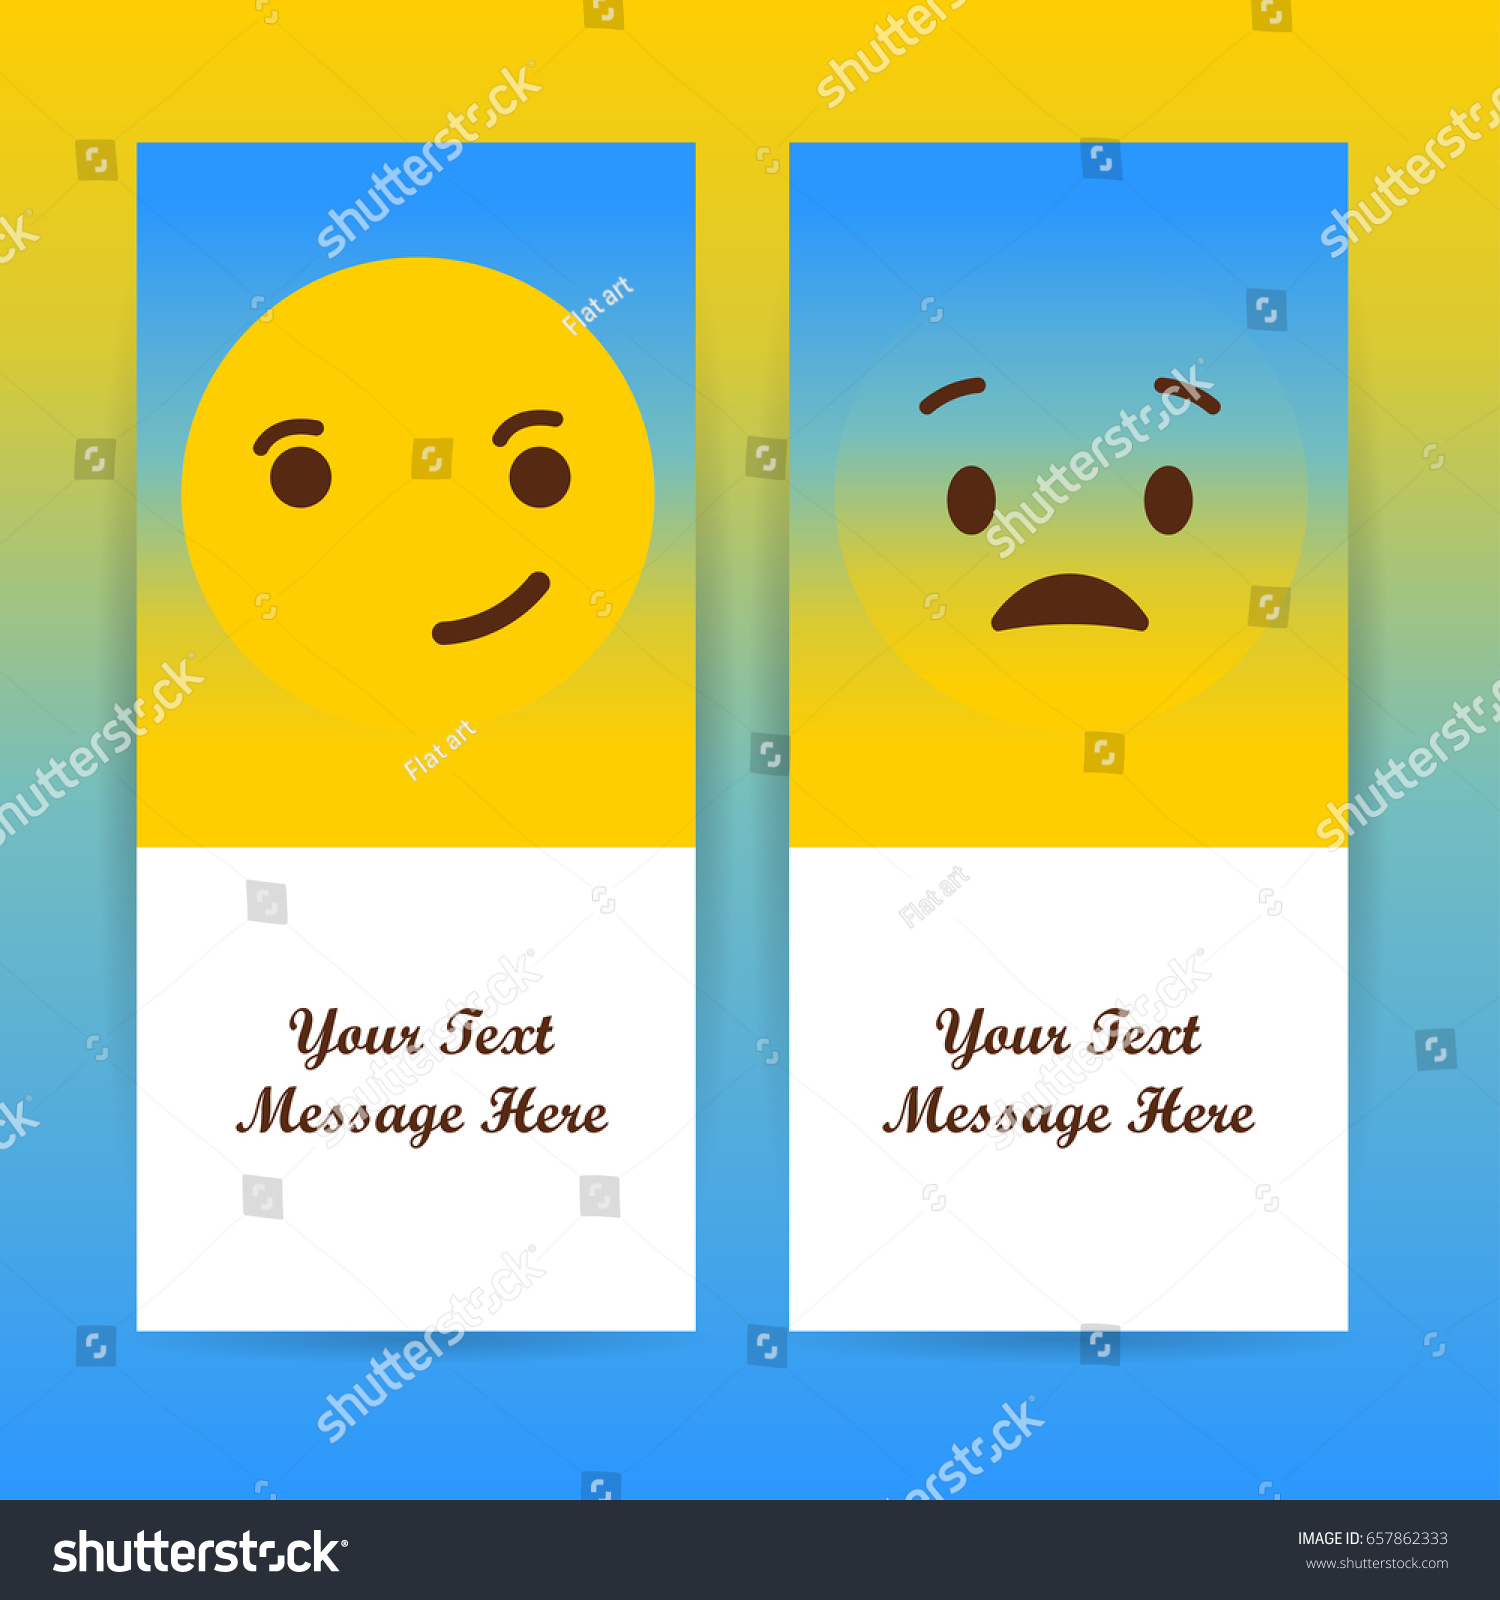 Smiley faces design elements vector illustration stock vector smiley faces design elements vector illustration background with feelings all emotions concept biocorpaavc